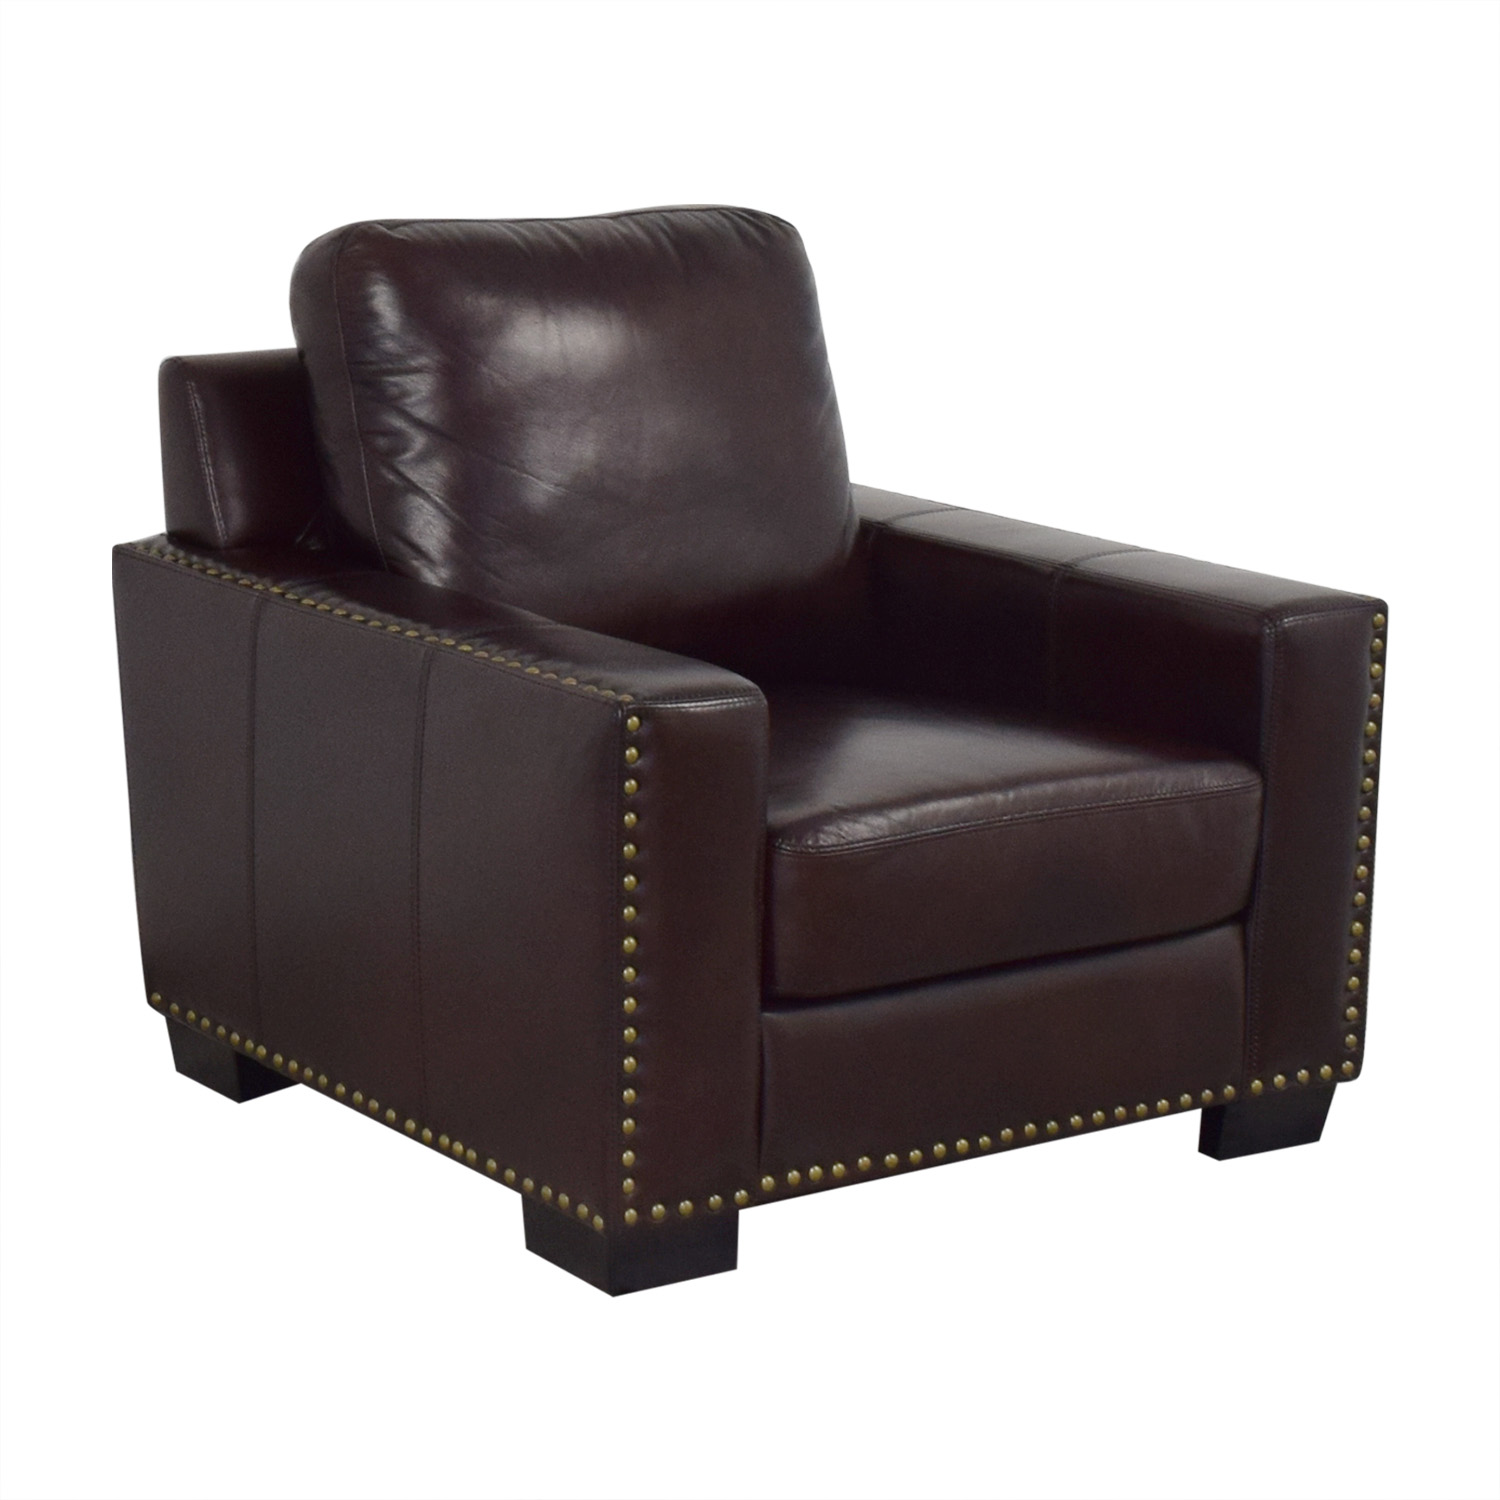 Miraculous 82 Off Abbyson Abbyson Monaco Leather Chair Chairs Ibusinesslaw Wood Chair Design Ideas Ibusinesslaworg